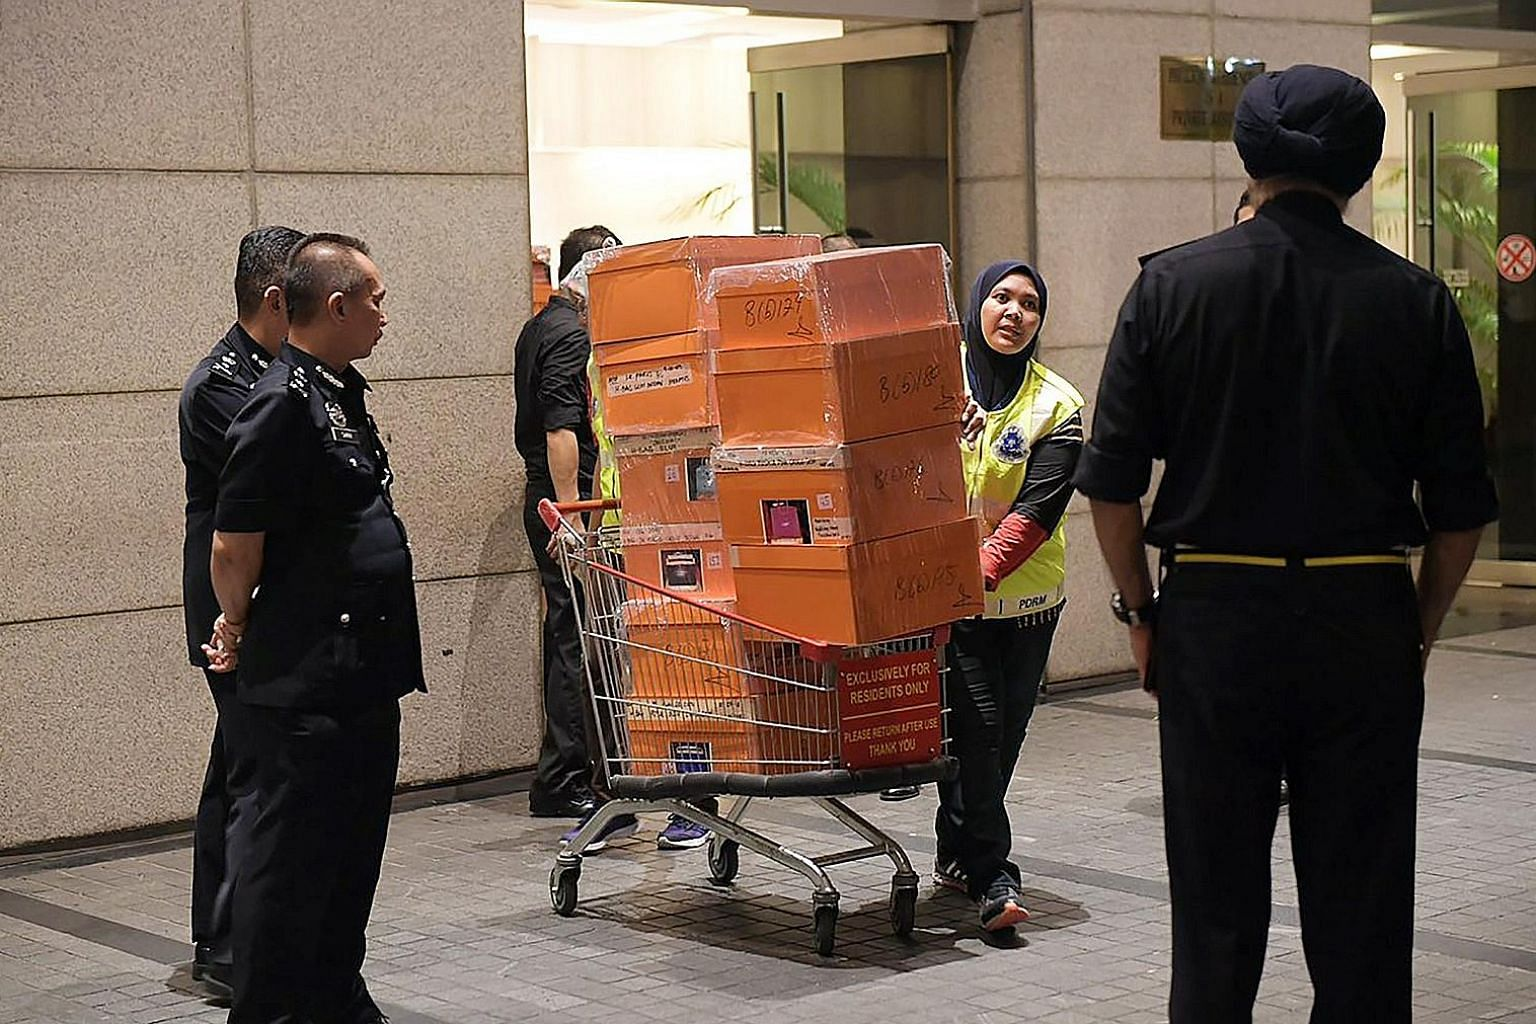 Malaysian police removing items in a raid last week from three apartments in an upmarket Kuala Lumpur condominium linked to former prime minister Najib Razak's family. The police carted away bags filled with jewellery, cash, watches and other valuabl